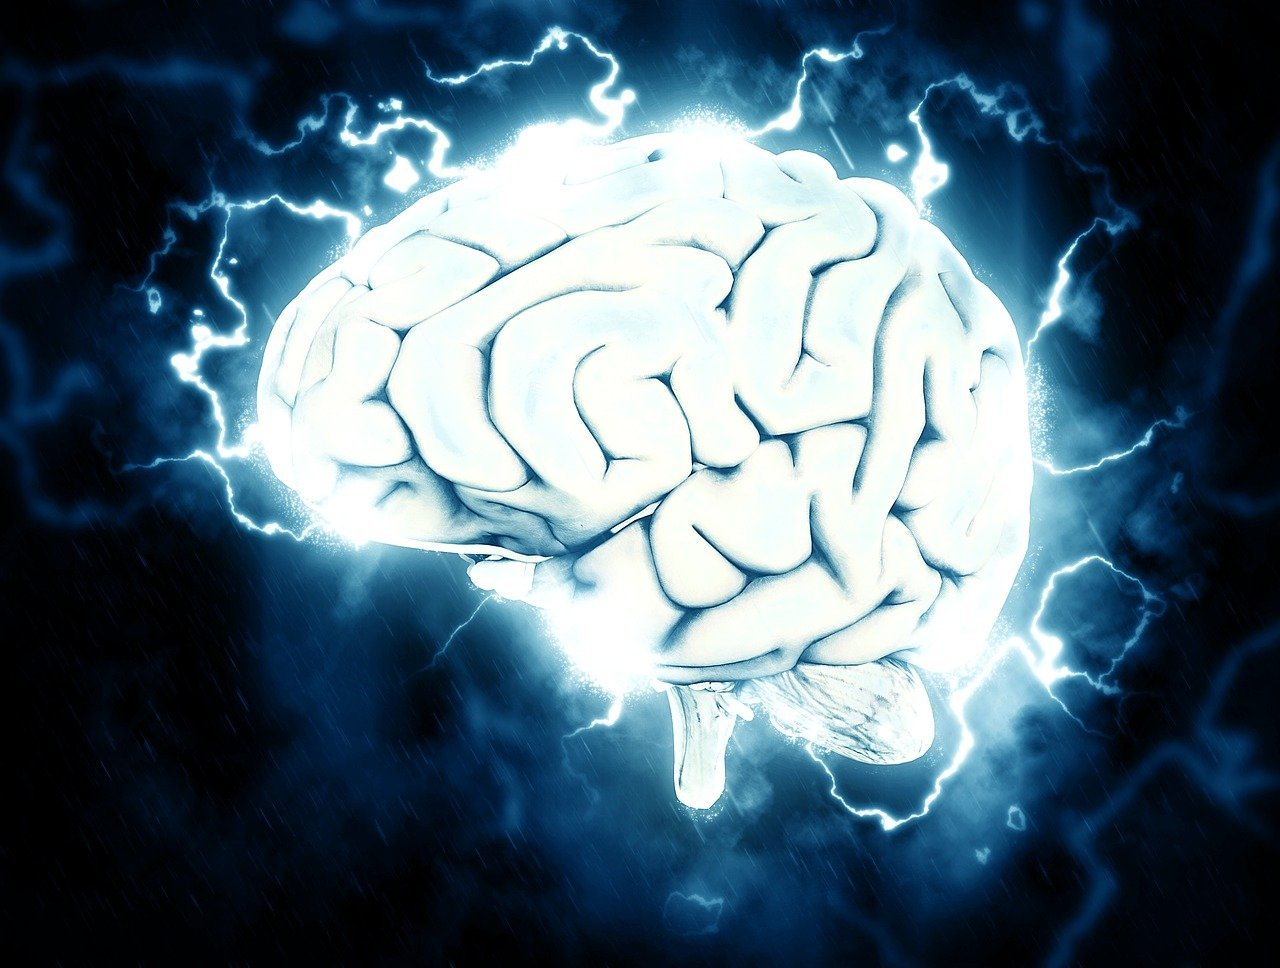 An image of an electrified brain | Photo: Pixabay/Pete Linforth